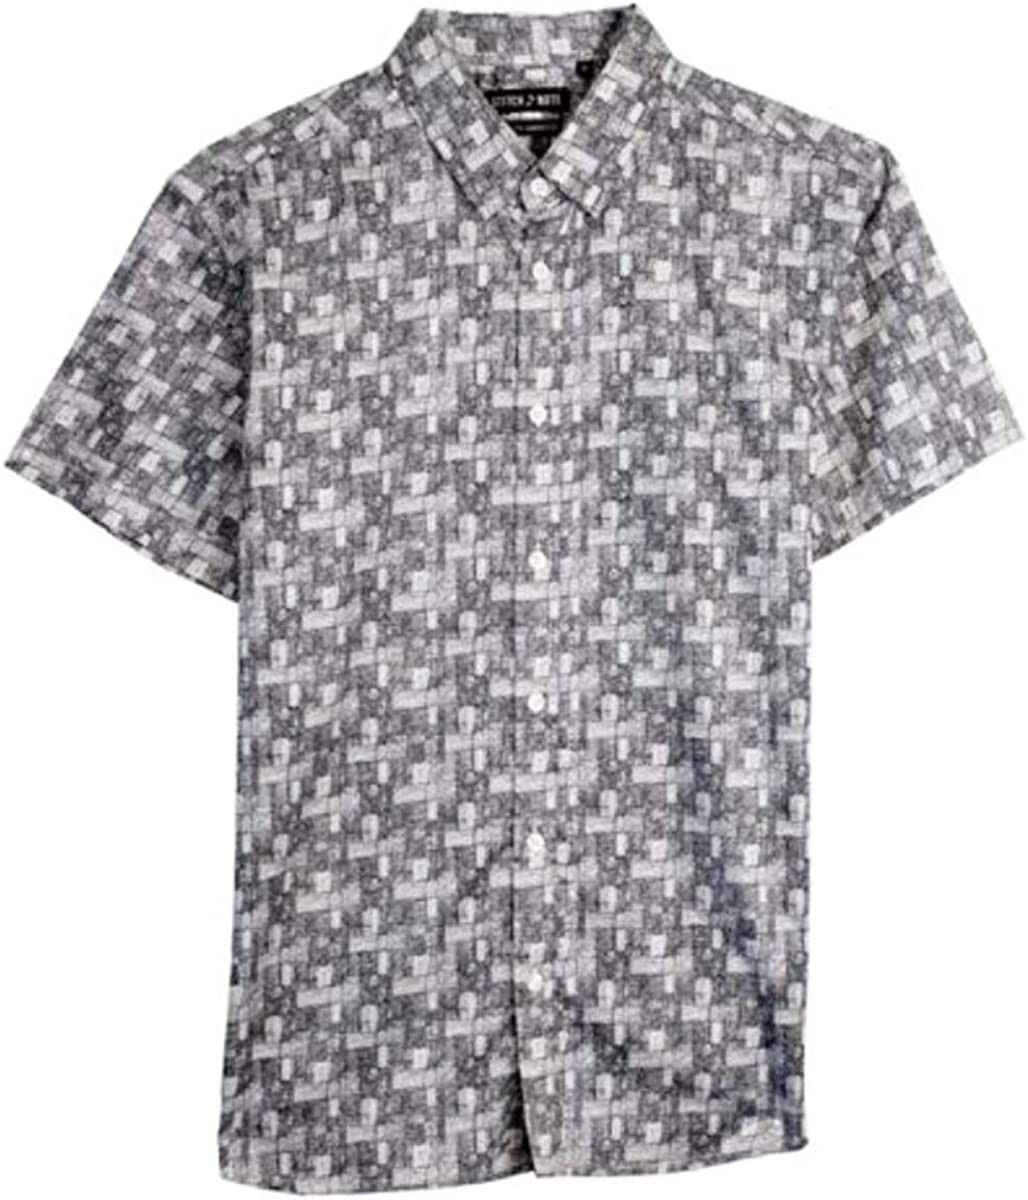 Stitch Note Square Black Print Short Sleeve Button Down Casual Men's Shirt